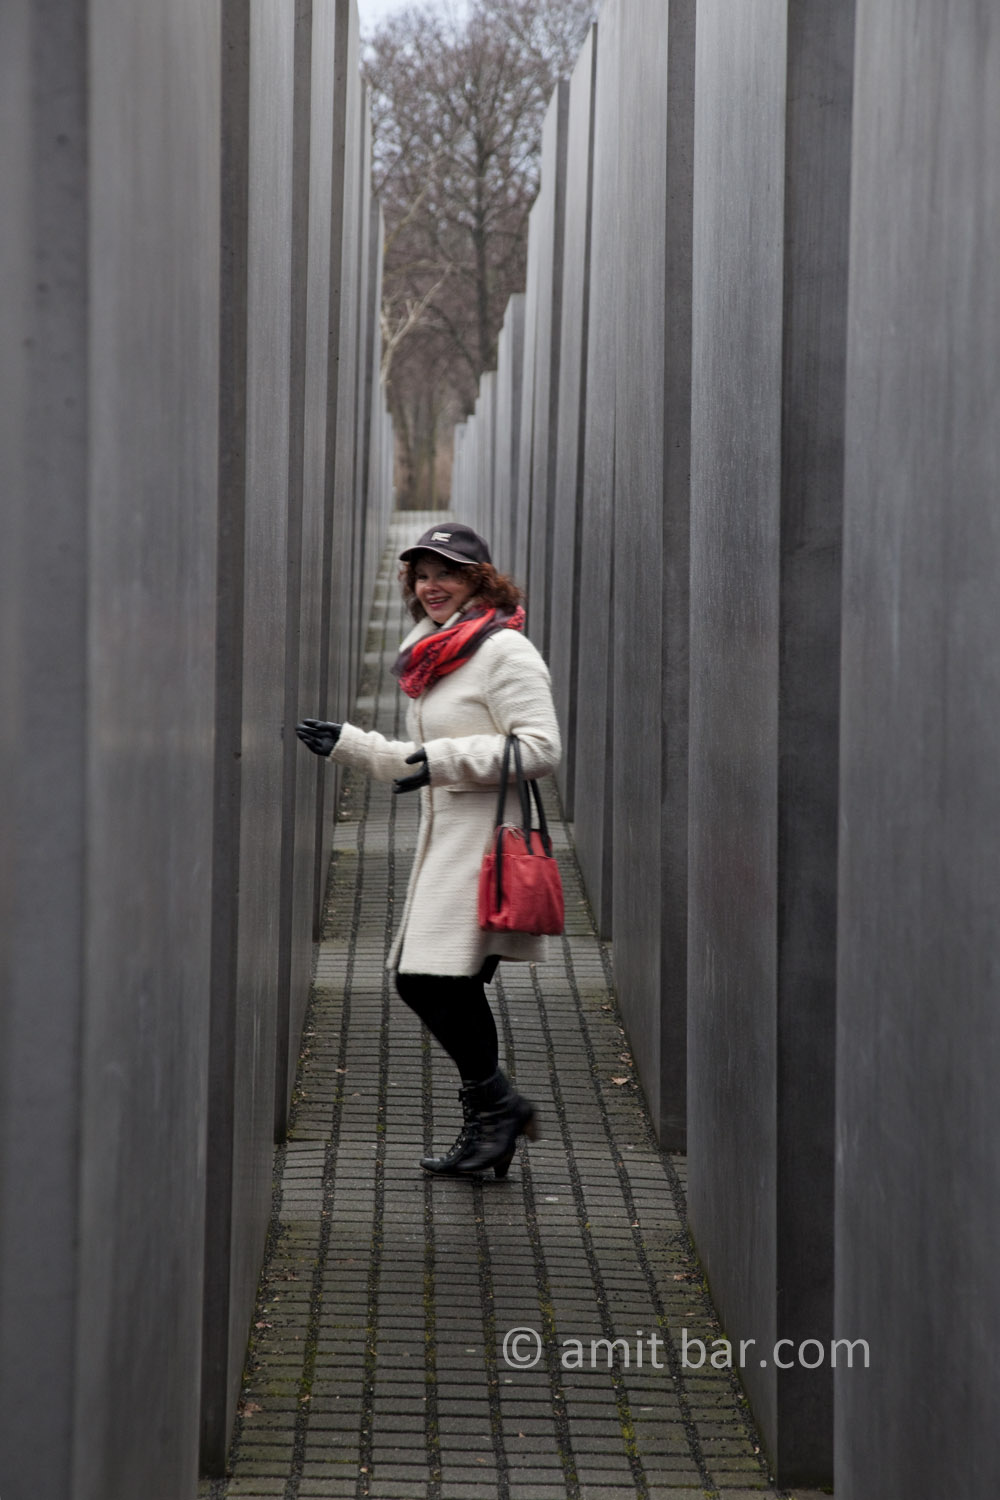 Berlin: Contrasts. The Holocaust monument